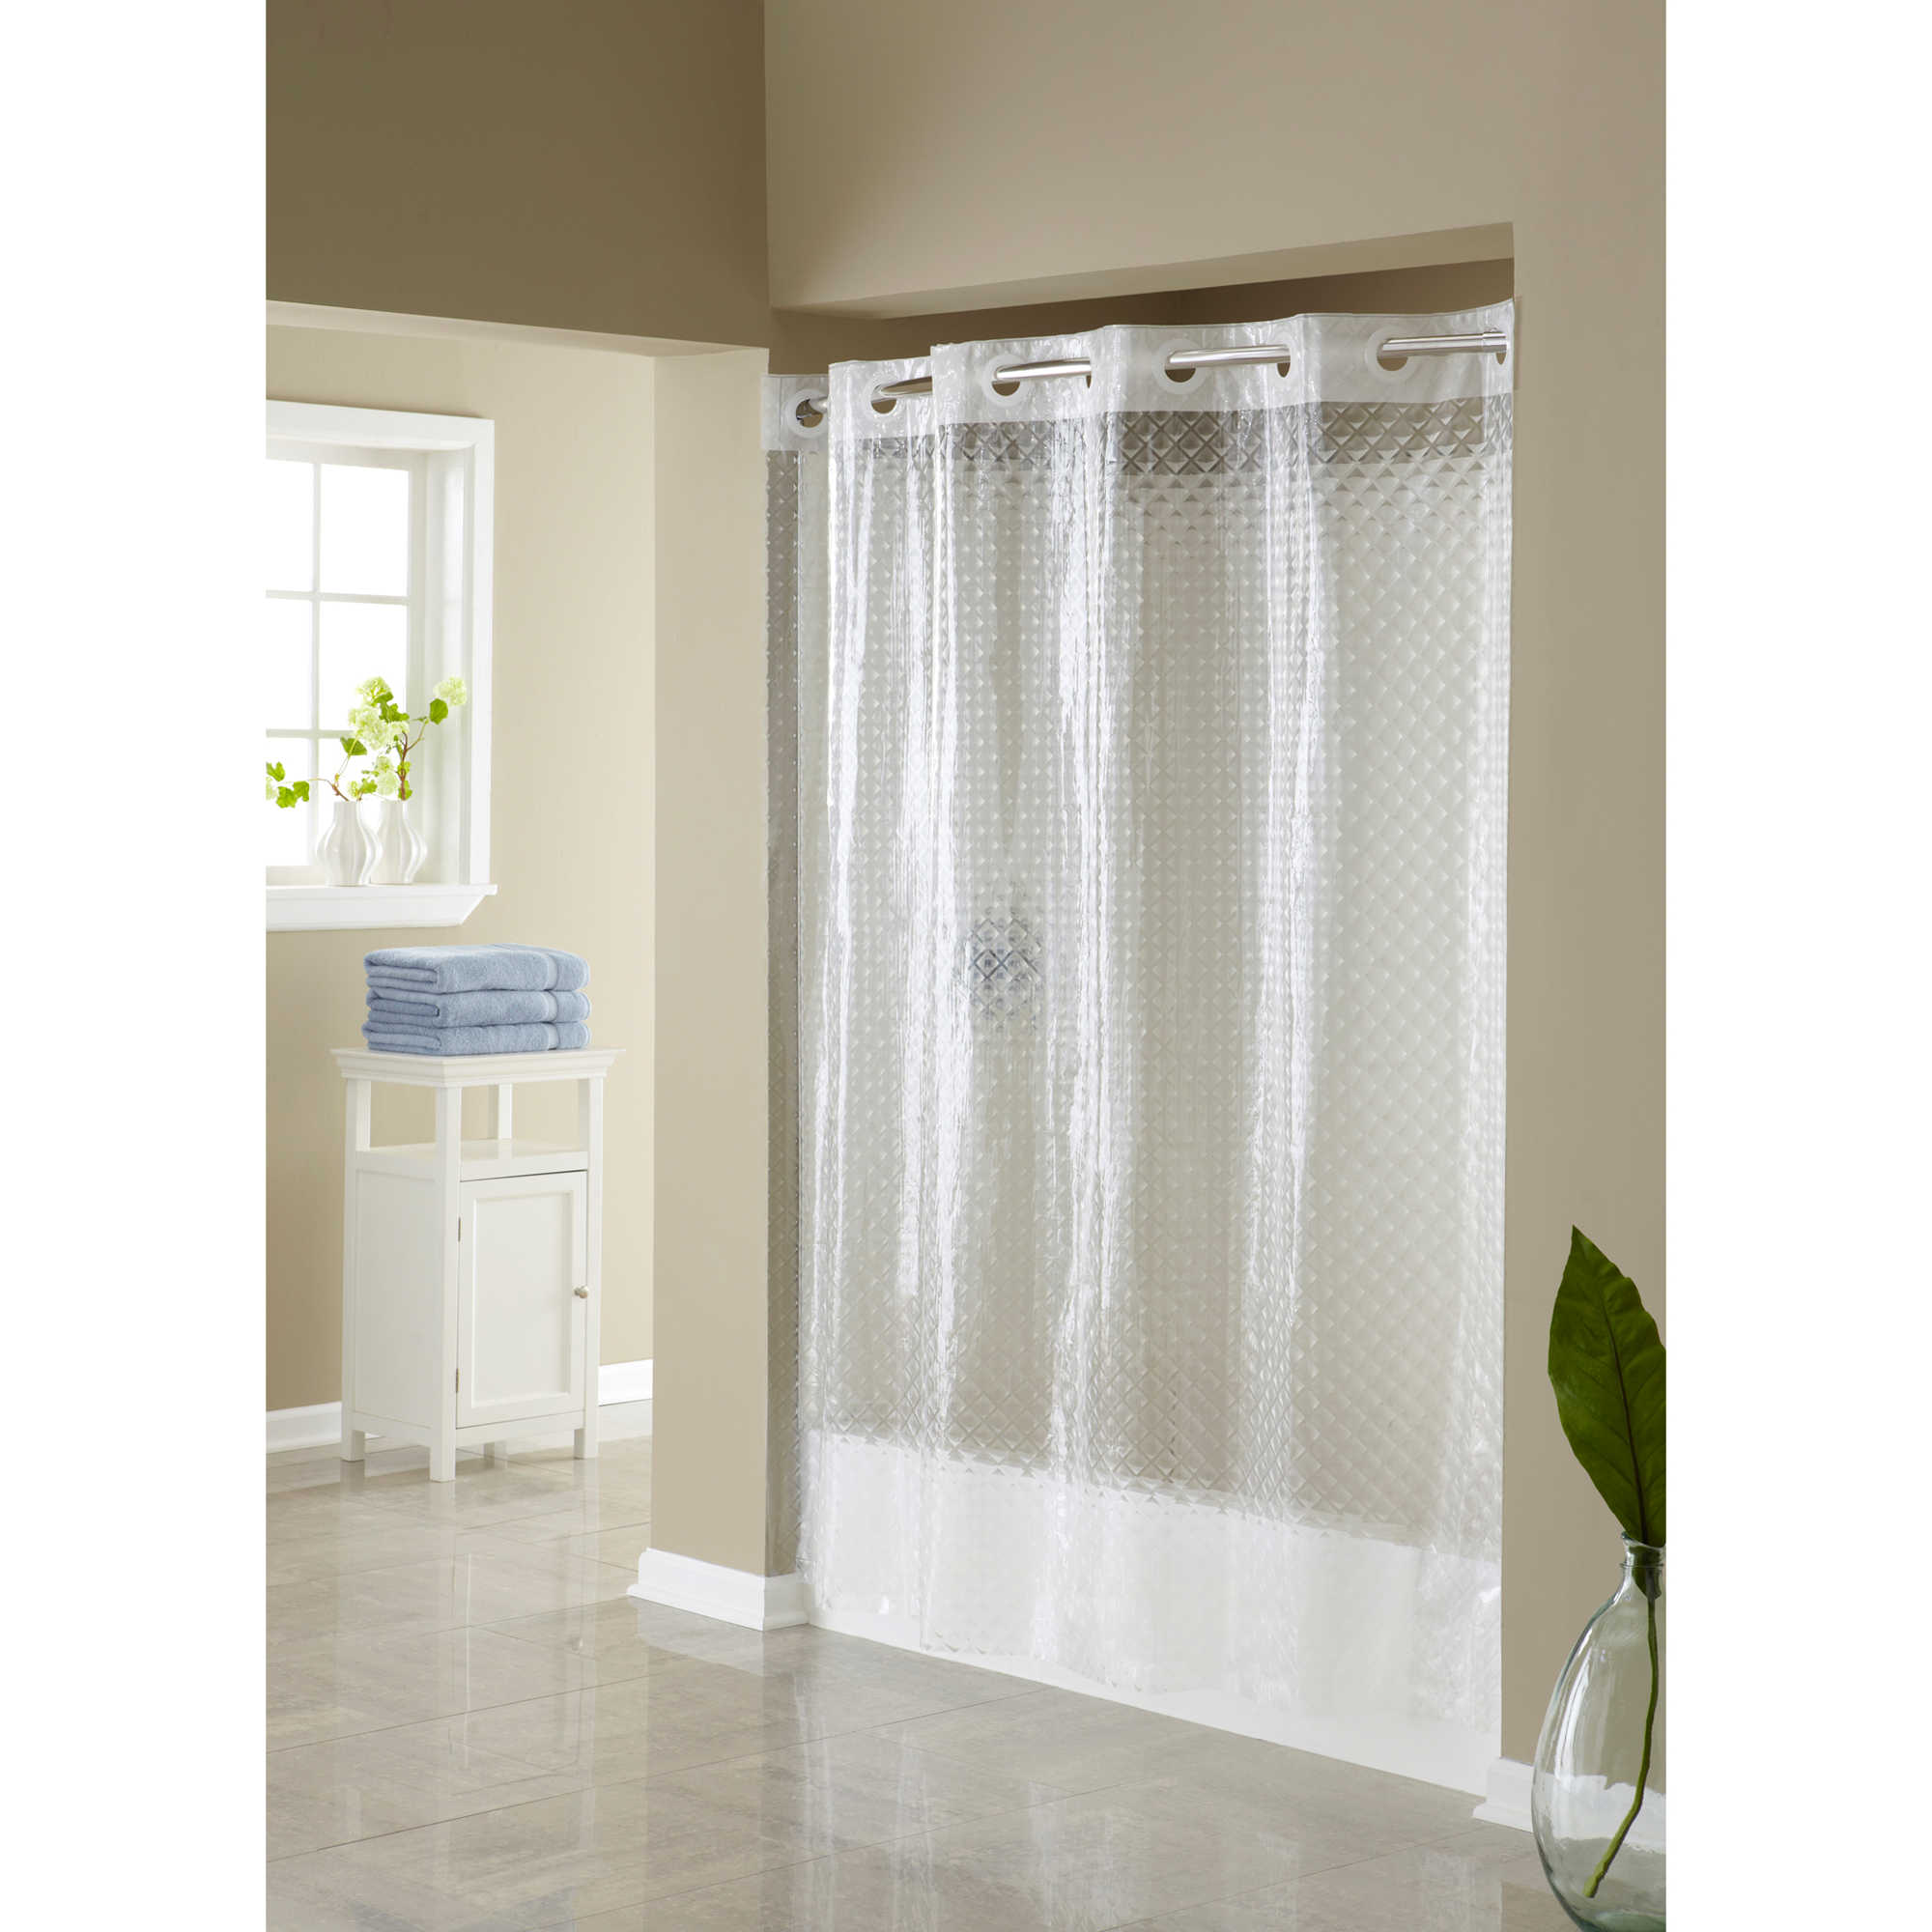 Hooklessreg 3D Diamond 71 Inch X 74 Shower Curtain